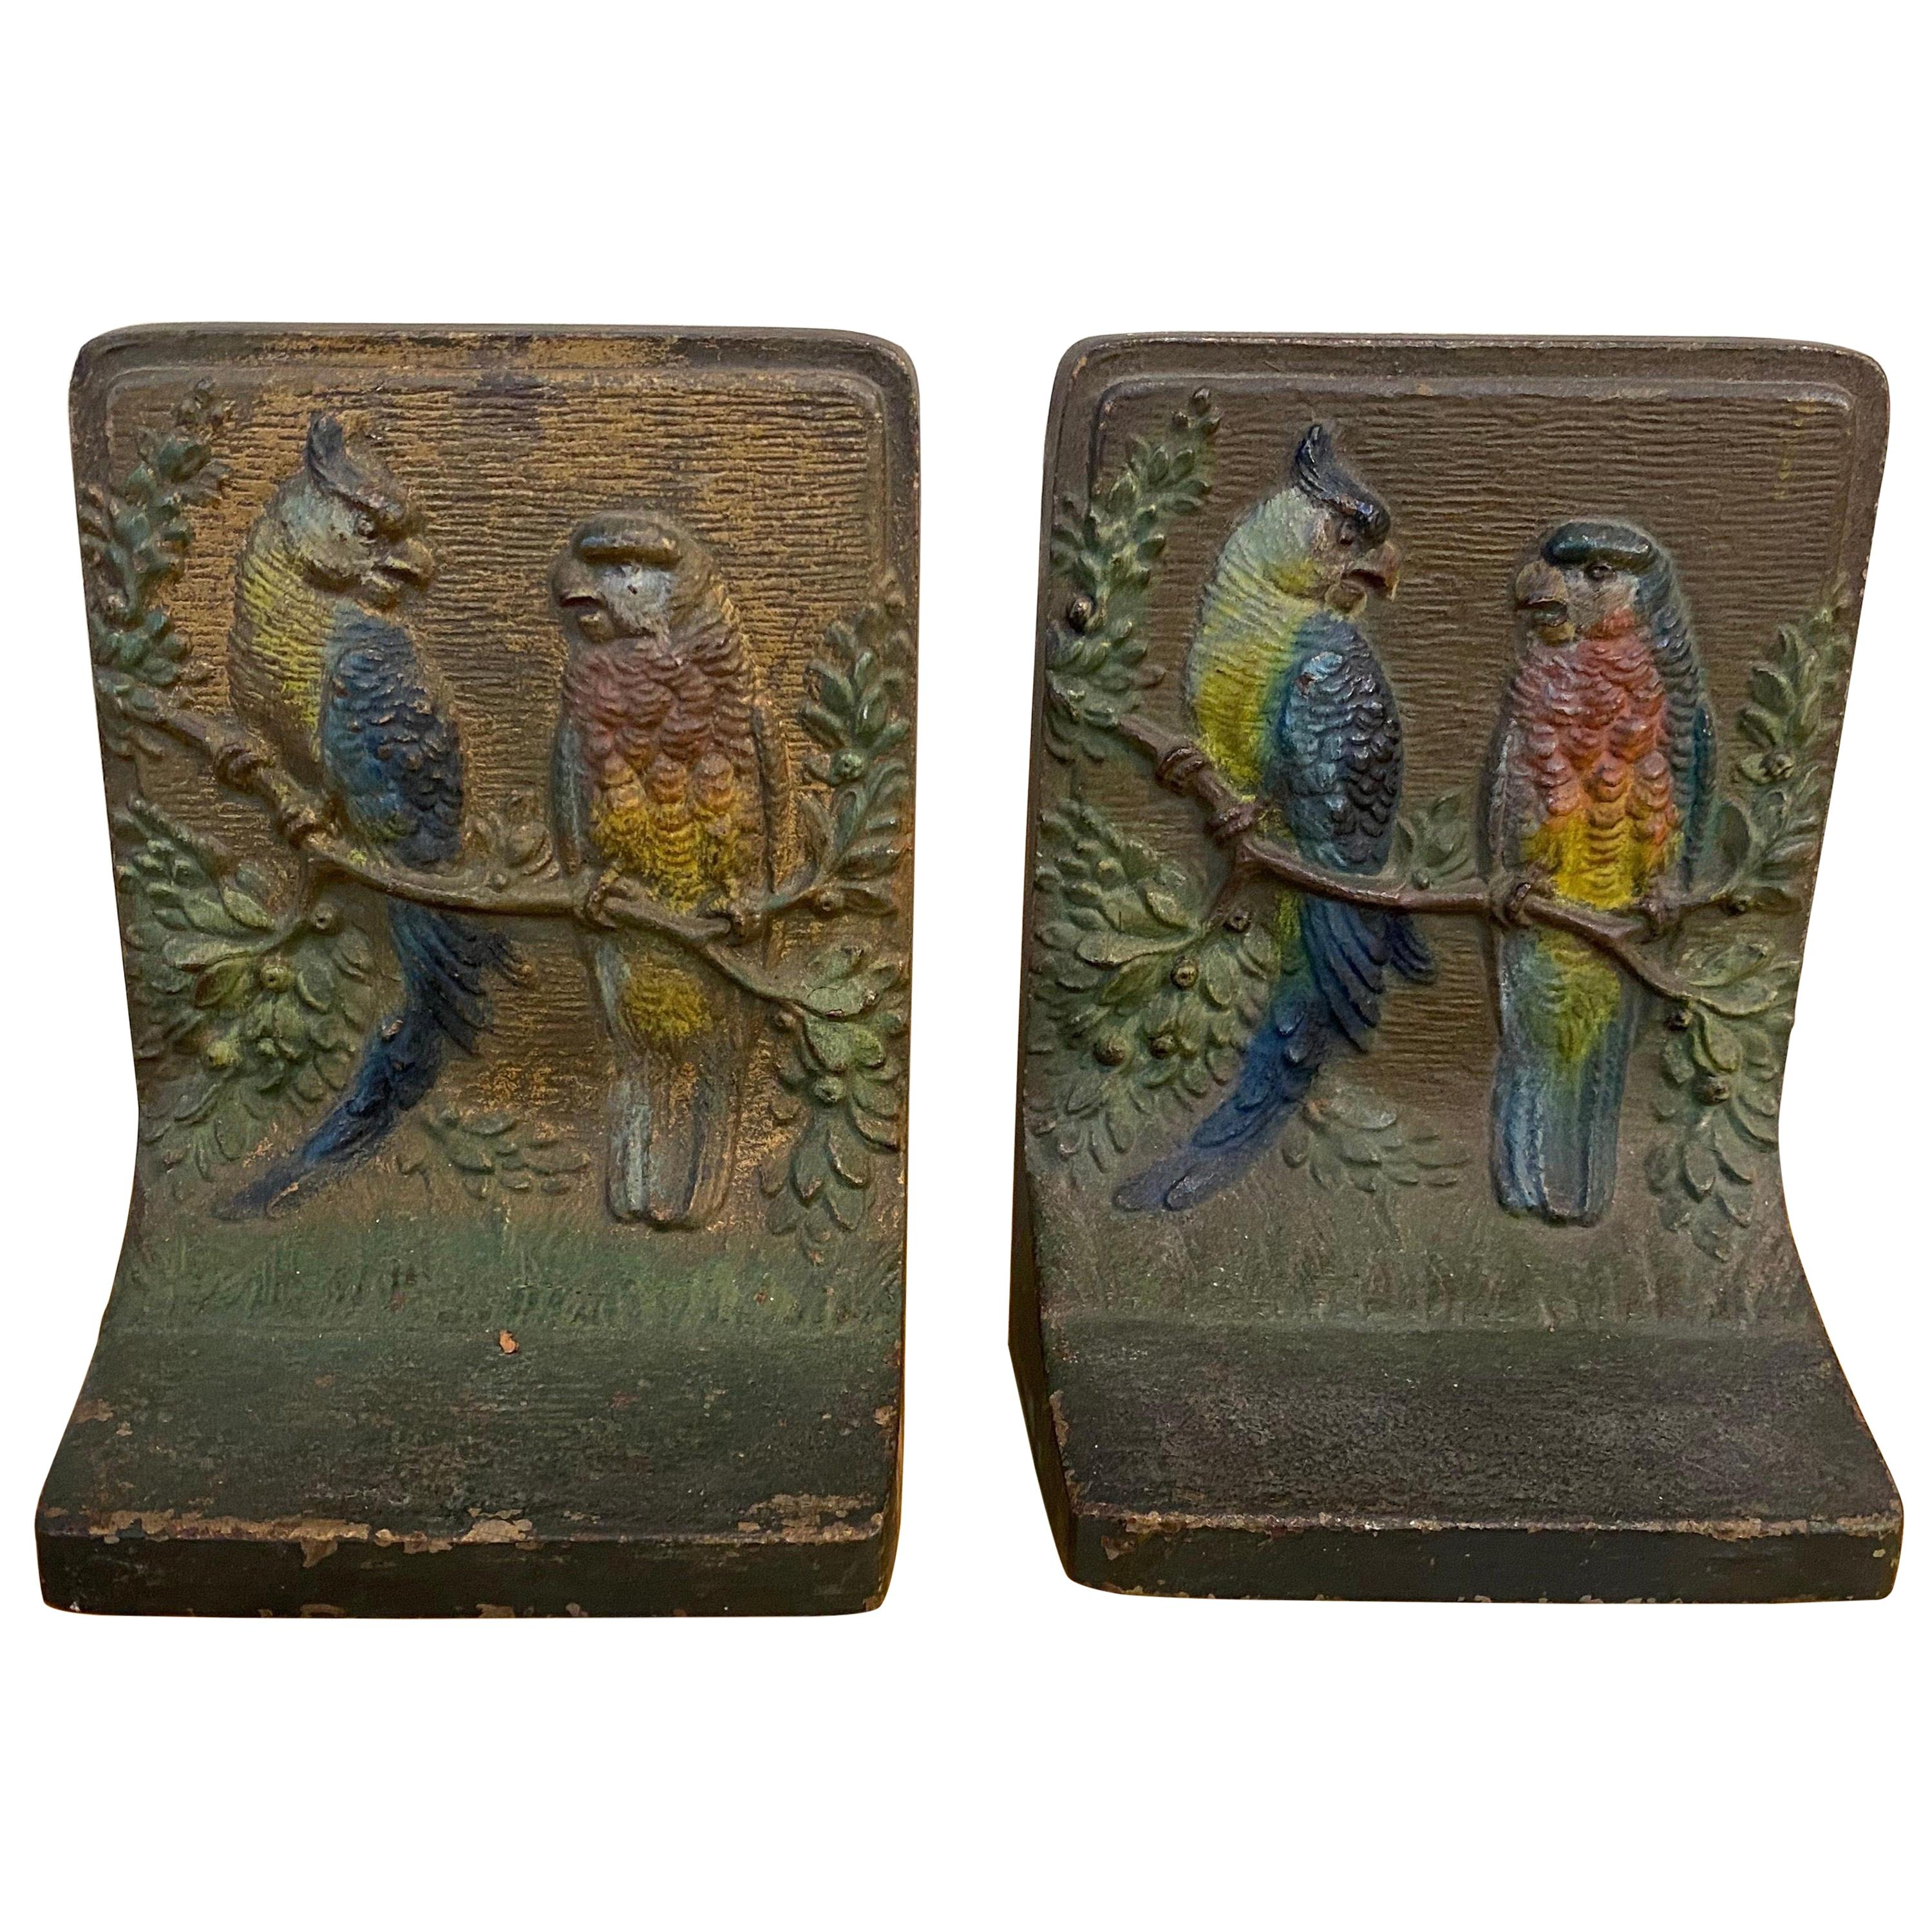 Pair of early 20th Century Polychrome Bookends of Parrots by Bradley and Hubbard